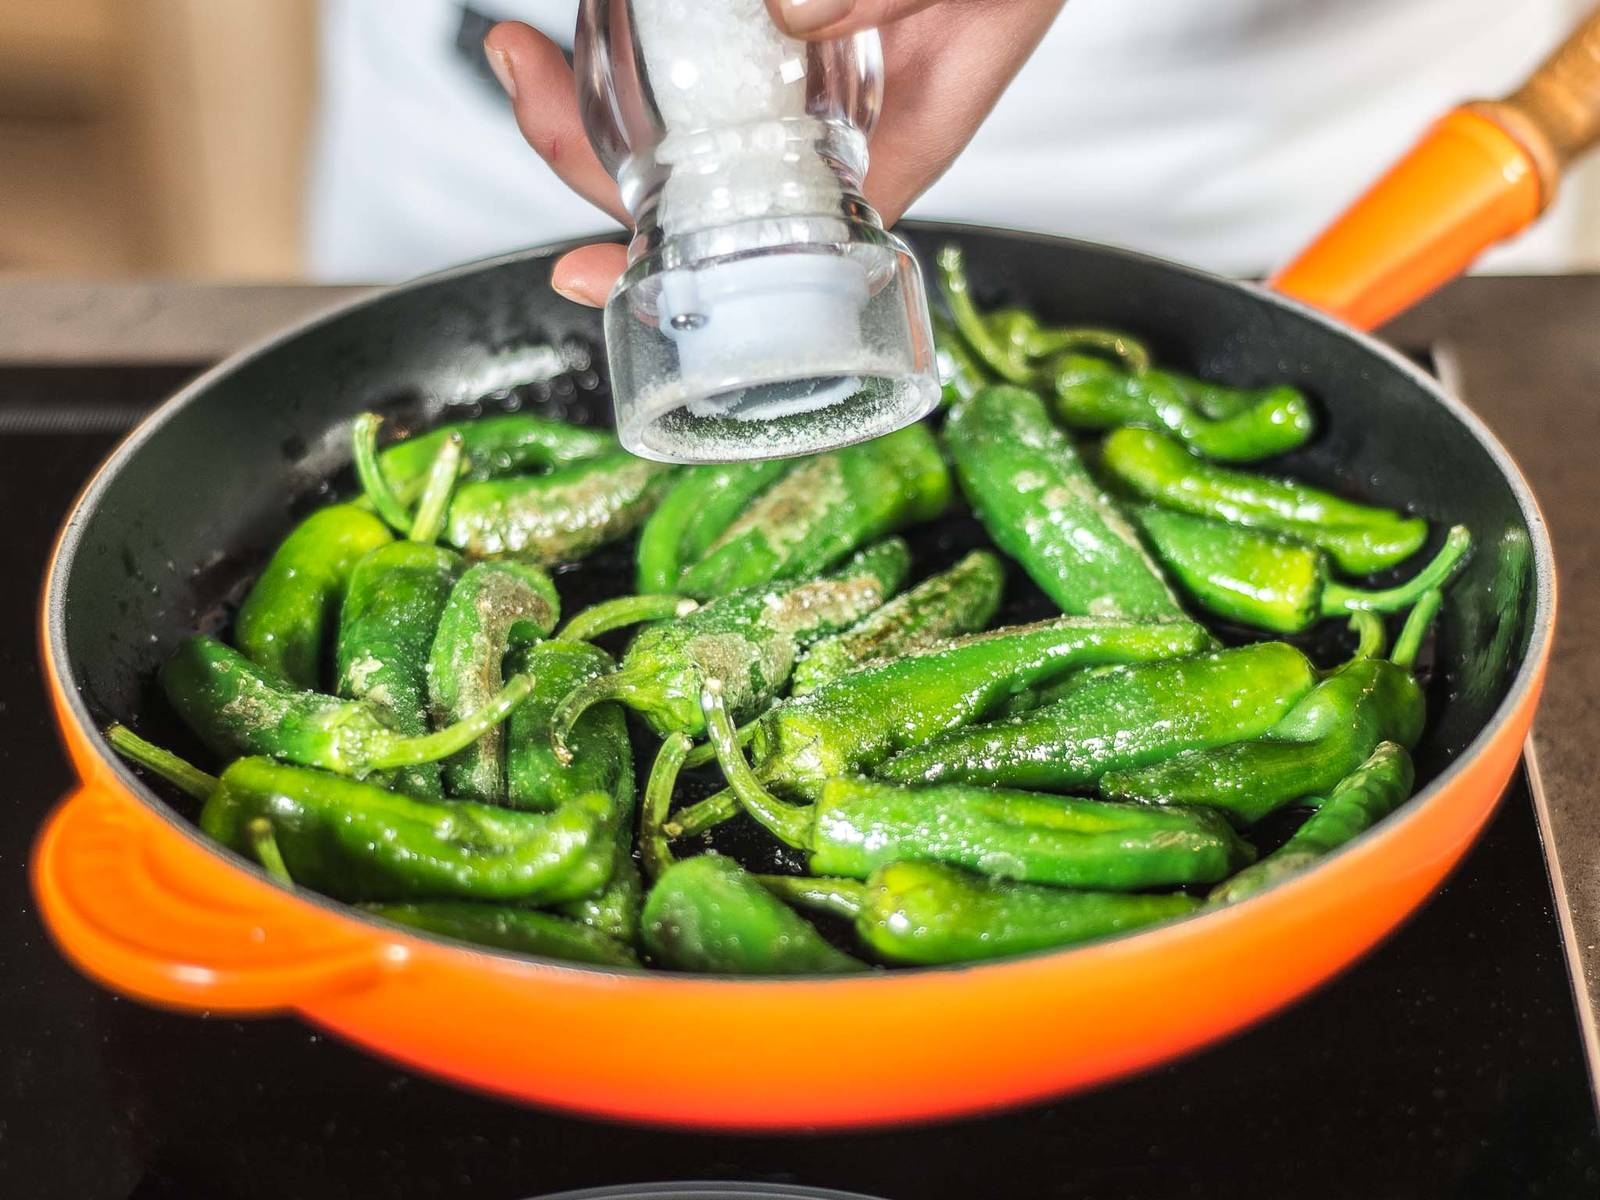 In a second pan, fry Padrón peppers in some vegetable oil and add plenty of salt. Toss the noodles in the sauce and serve in a deep dish with the fried Padrón peppers on top.